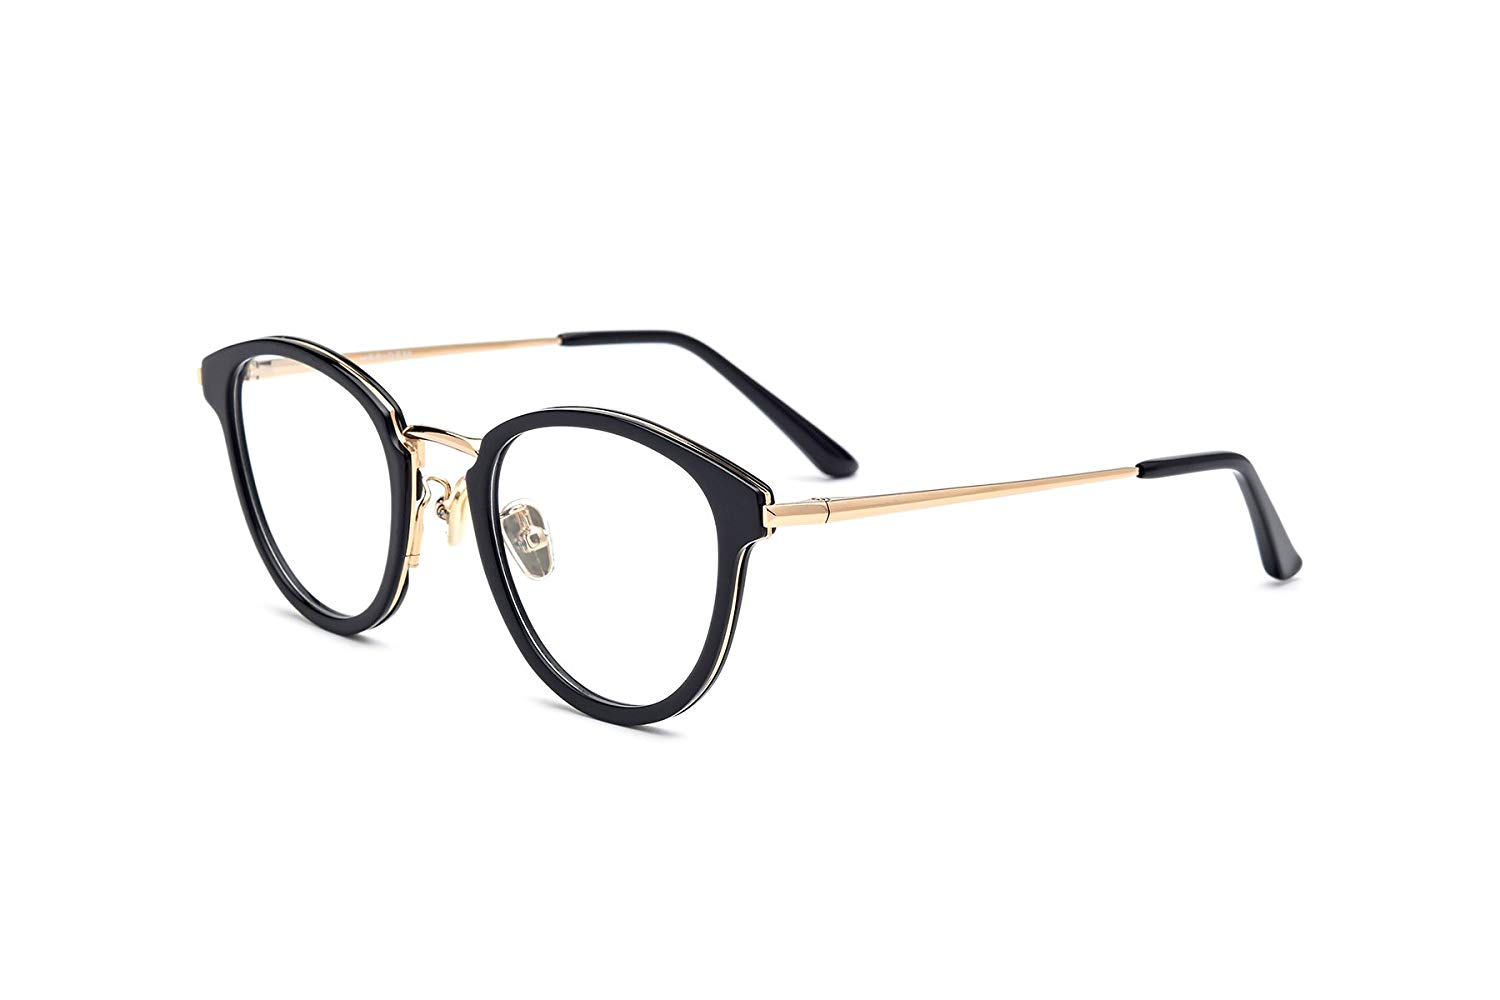 df85bc8294d Get Quotations · HEPIDEM Acetate Round Optical Glasses Frame Prescription  Myopia Spectacles 70043